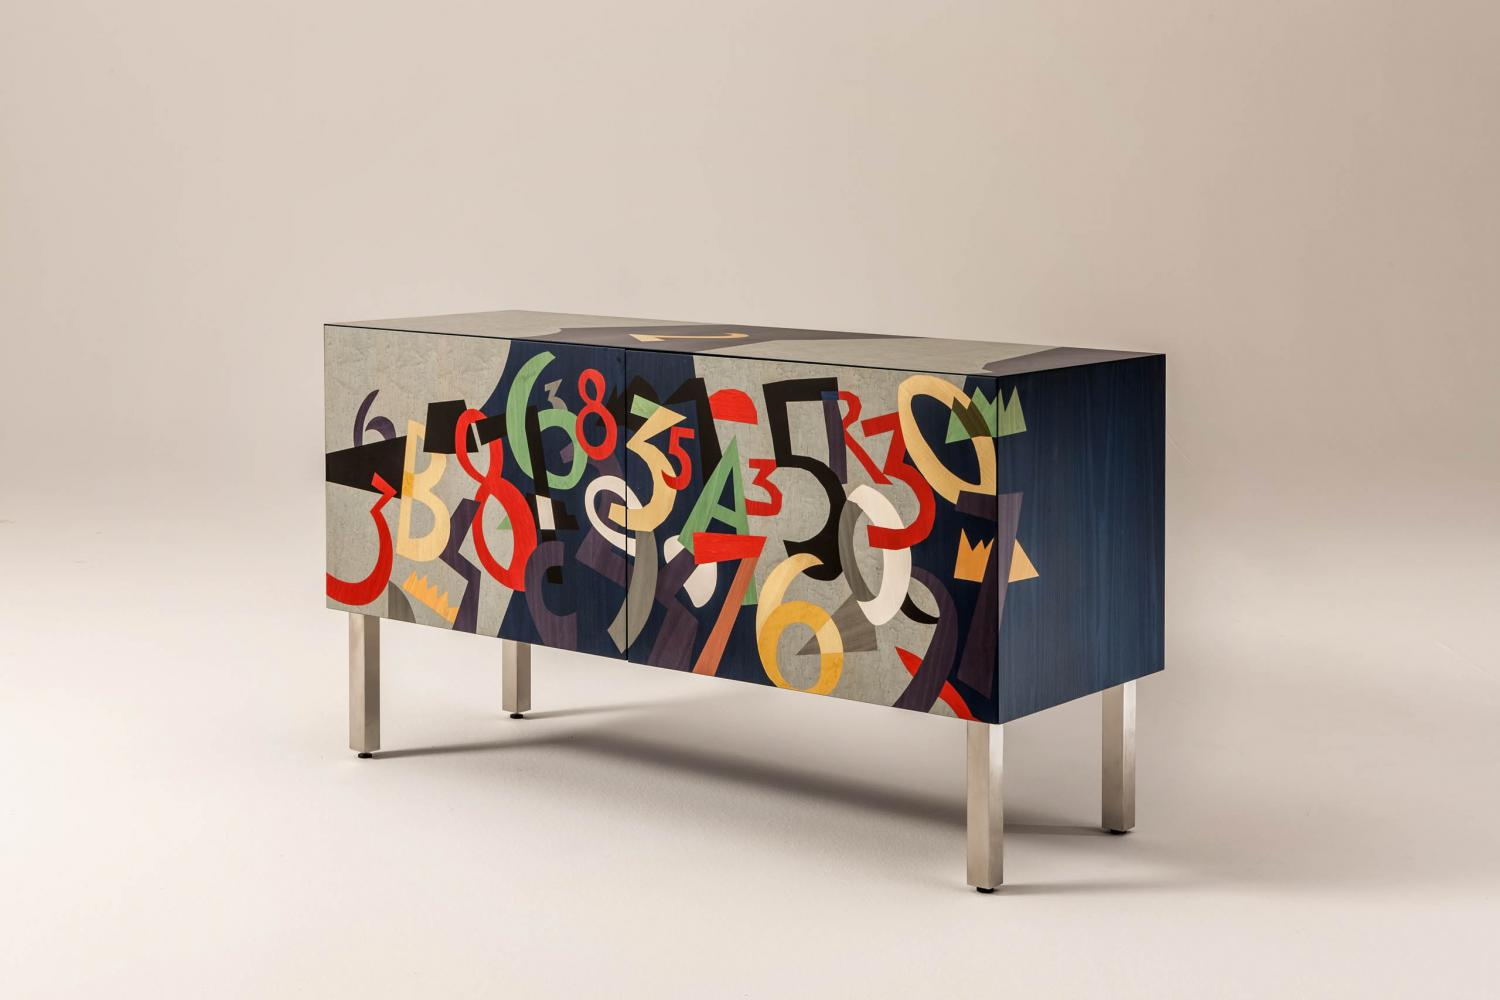 Modern limited edition sideboard in wood with inlays designed by Ugo Nespolo for luxury homes